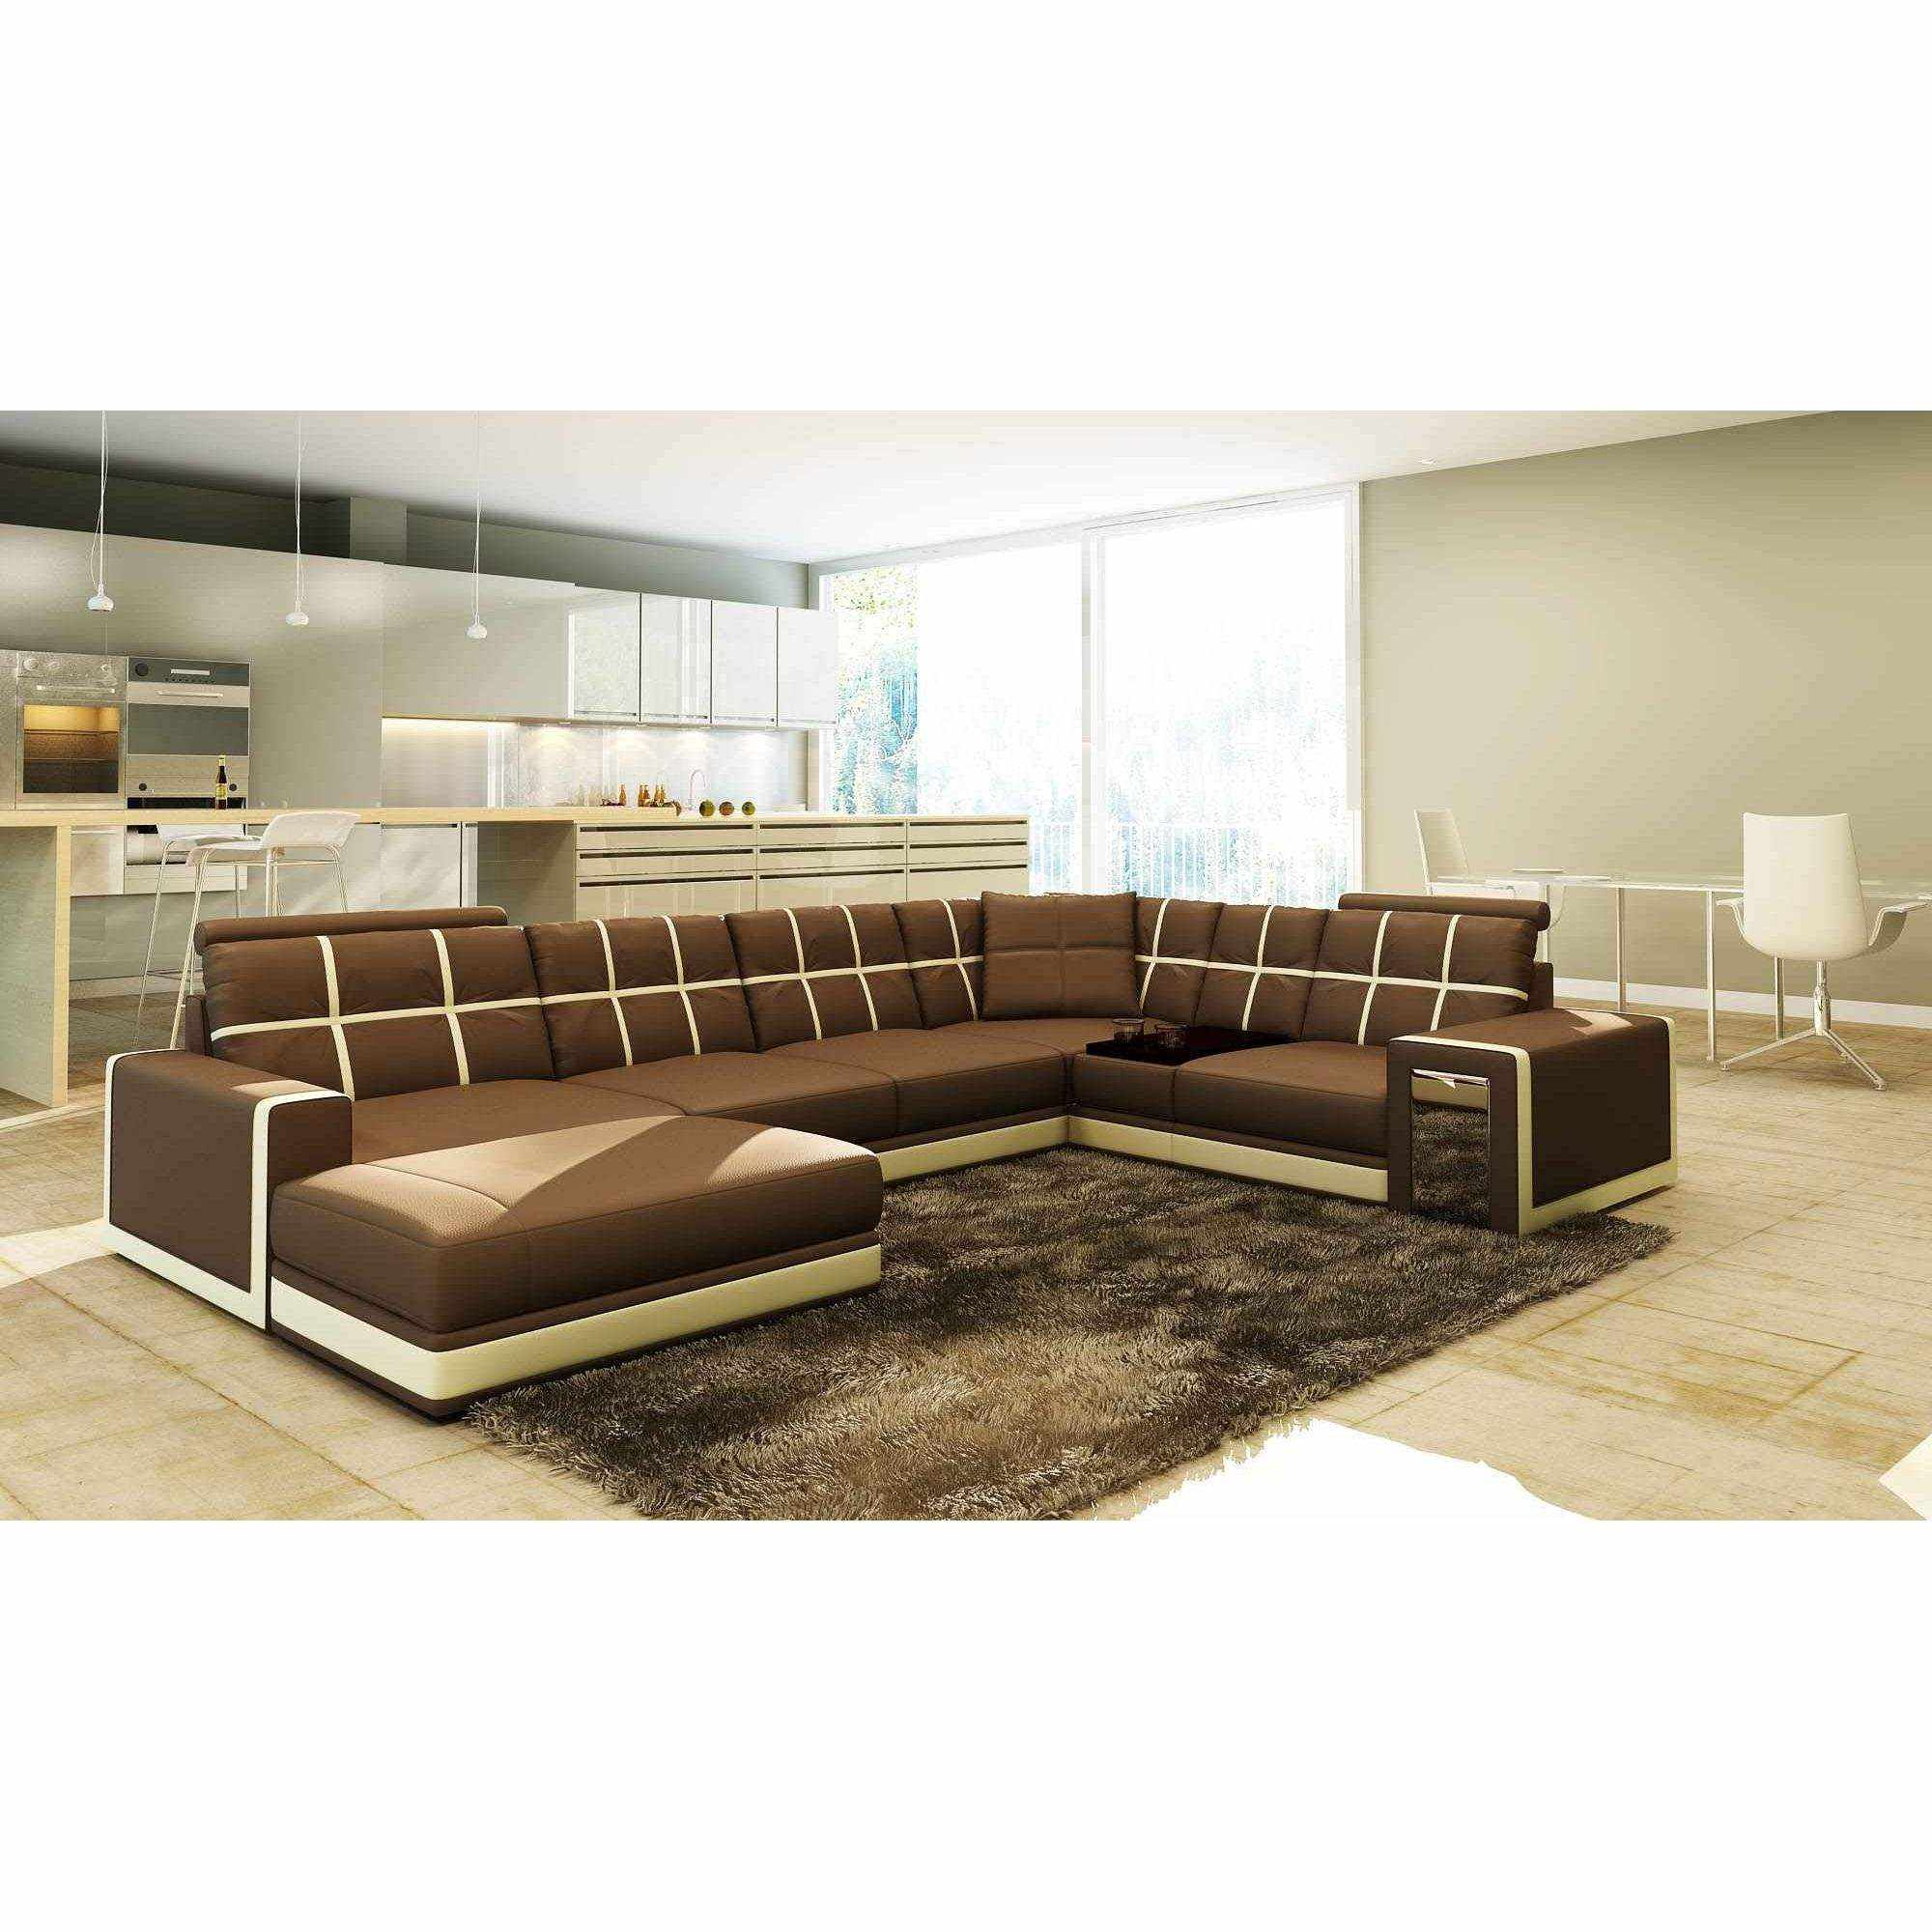 Deco In Paris Canape D Angle Panoramique Cuir Marron Et Beige Design Electra Marron Et Beige